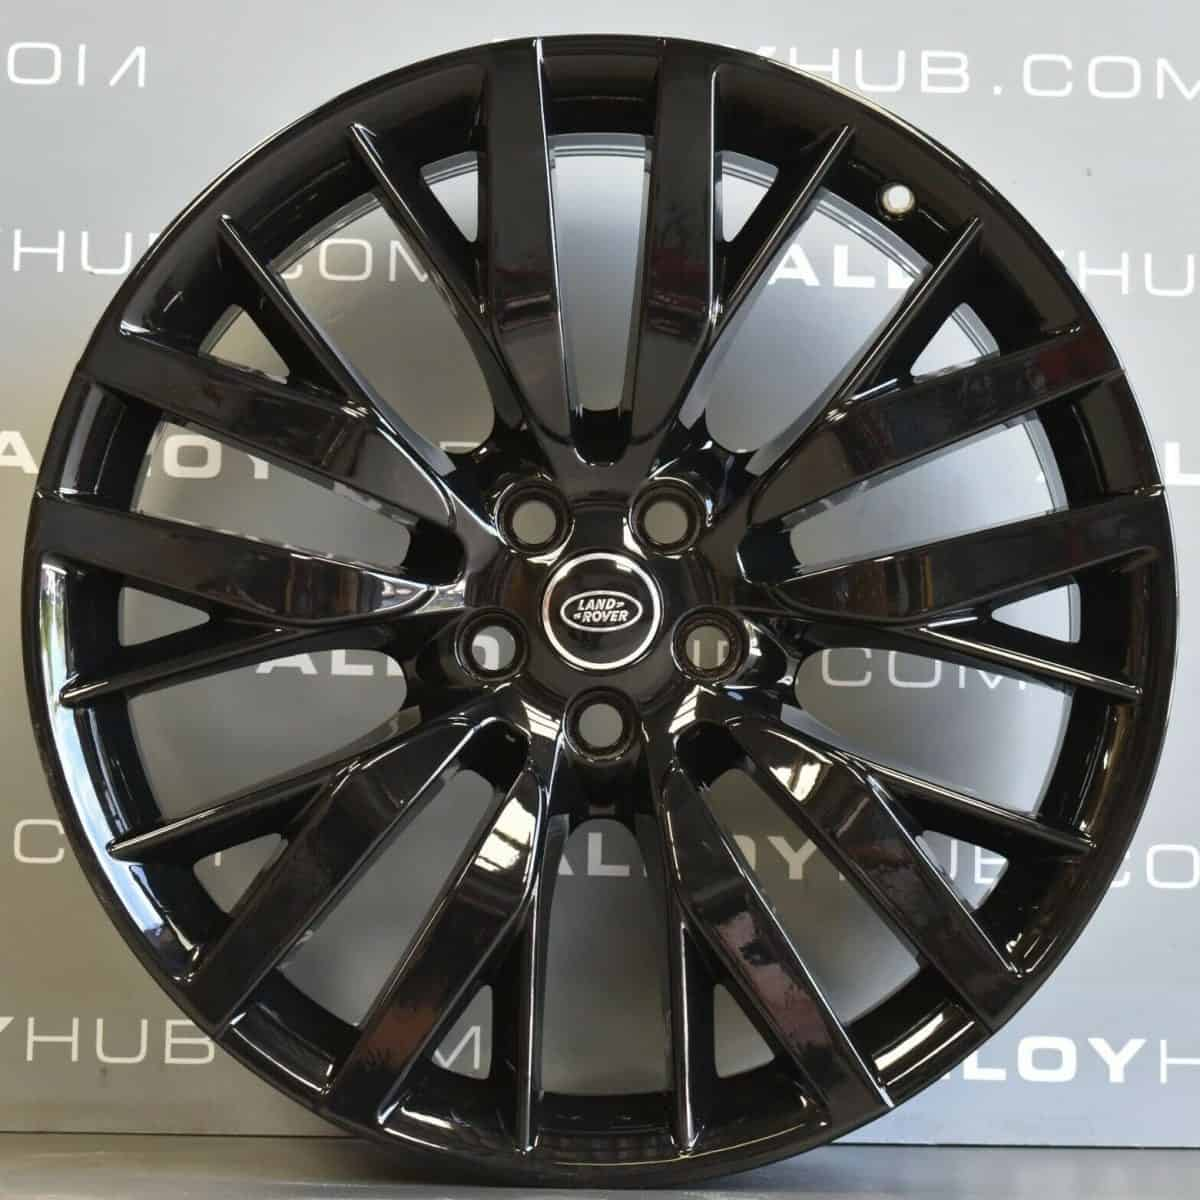 """Genuine Land Rover Range Rover Sport SVR L494 Style 108 22"""" inch Alloy Wheels with Gloss Black Finish FK6M-1007-BA"""